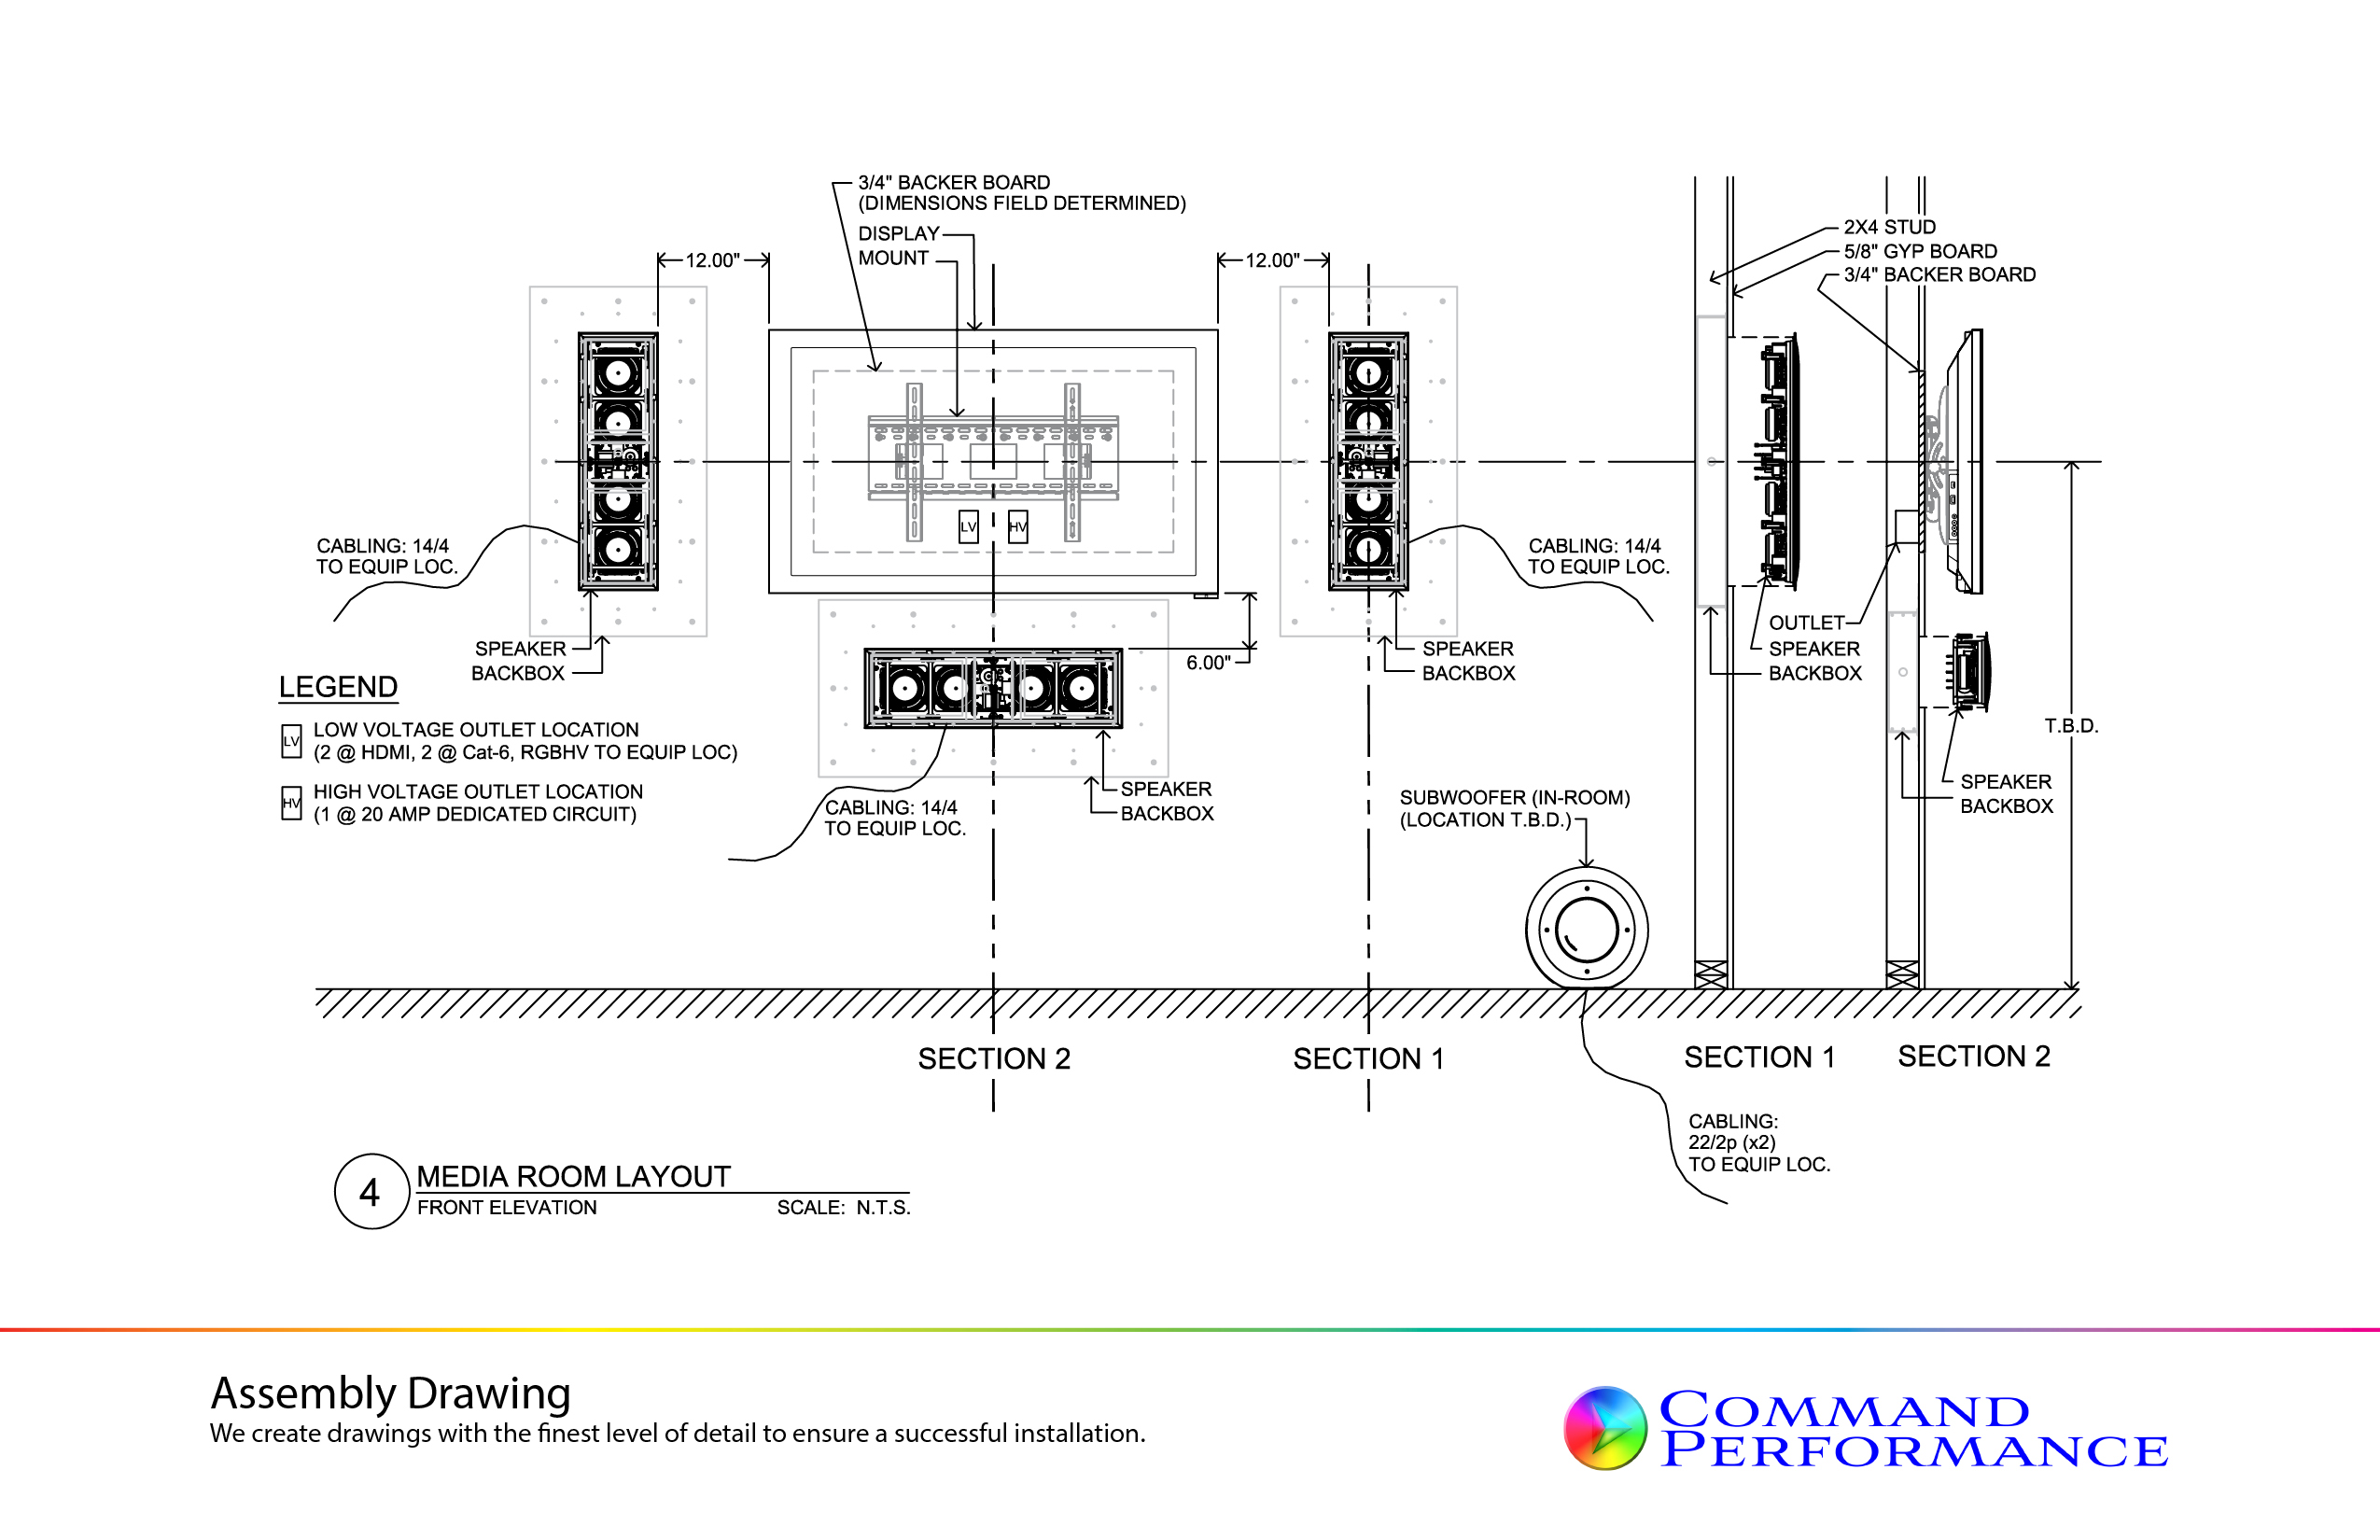 vantage lighting control wiring diagram lighting control